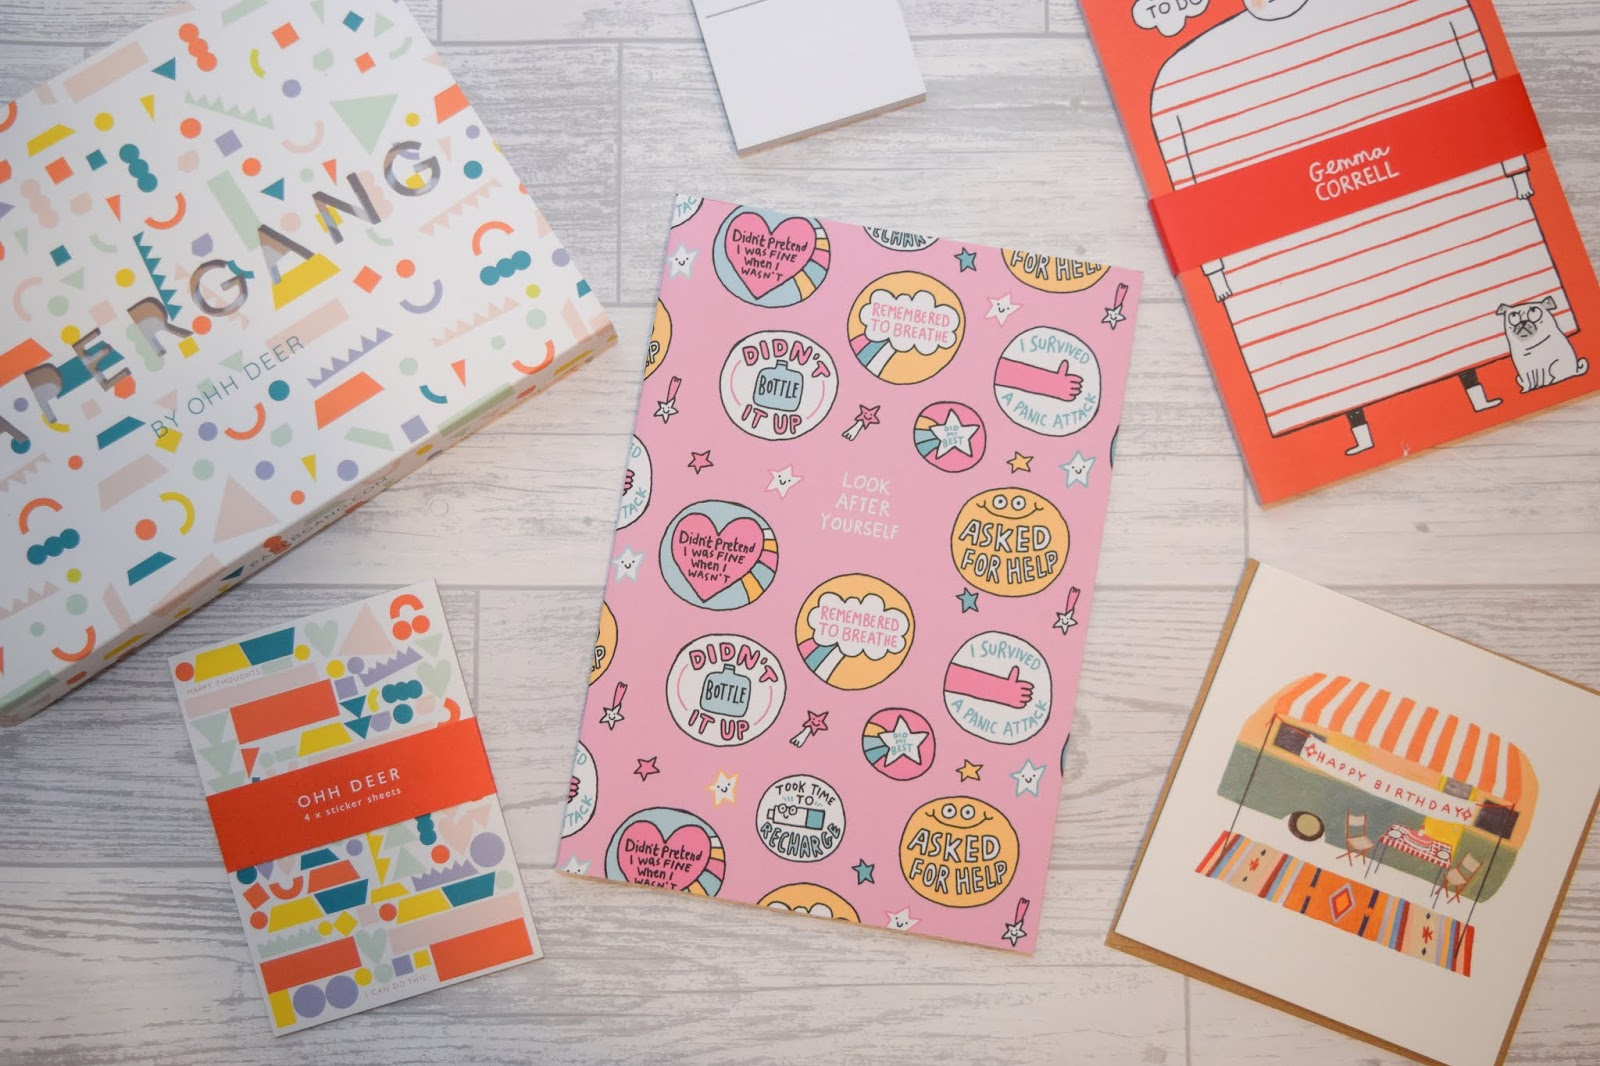 An overview of the contents of a stationery box including post it notes, an A4 notebook, an A5 list pad, a birthday card and some stickers.